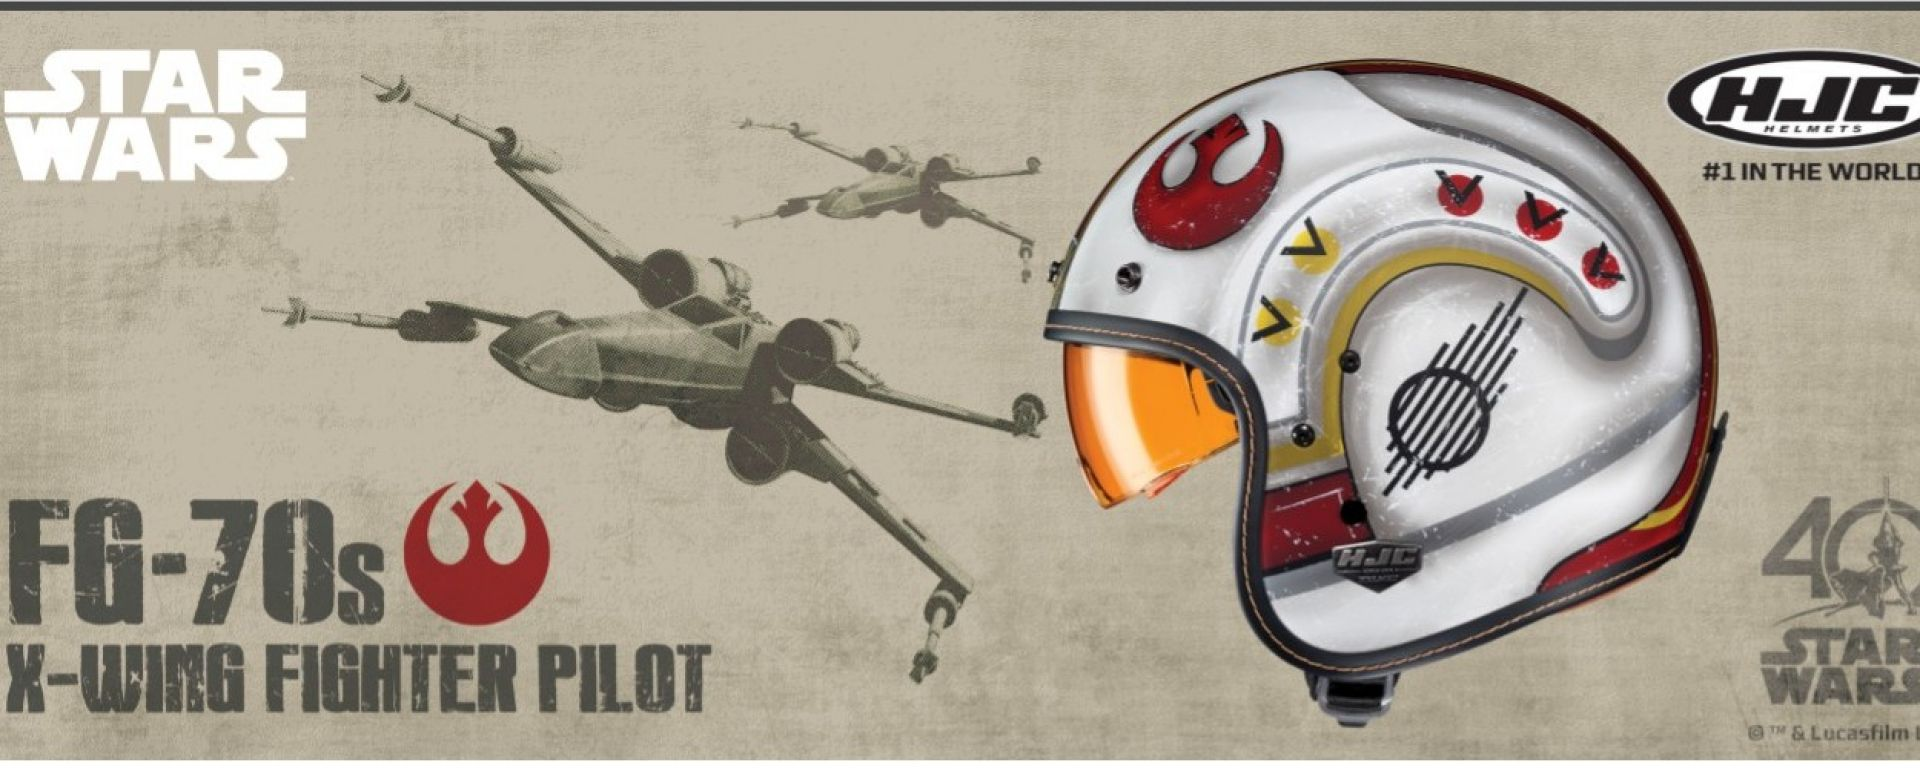 HJC FG-70's X-Wing Fighter Pilot